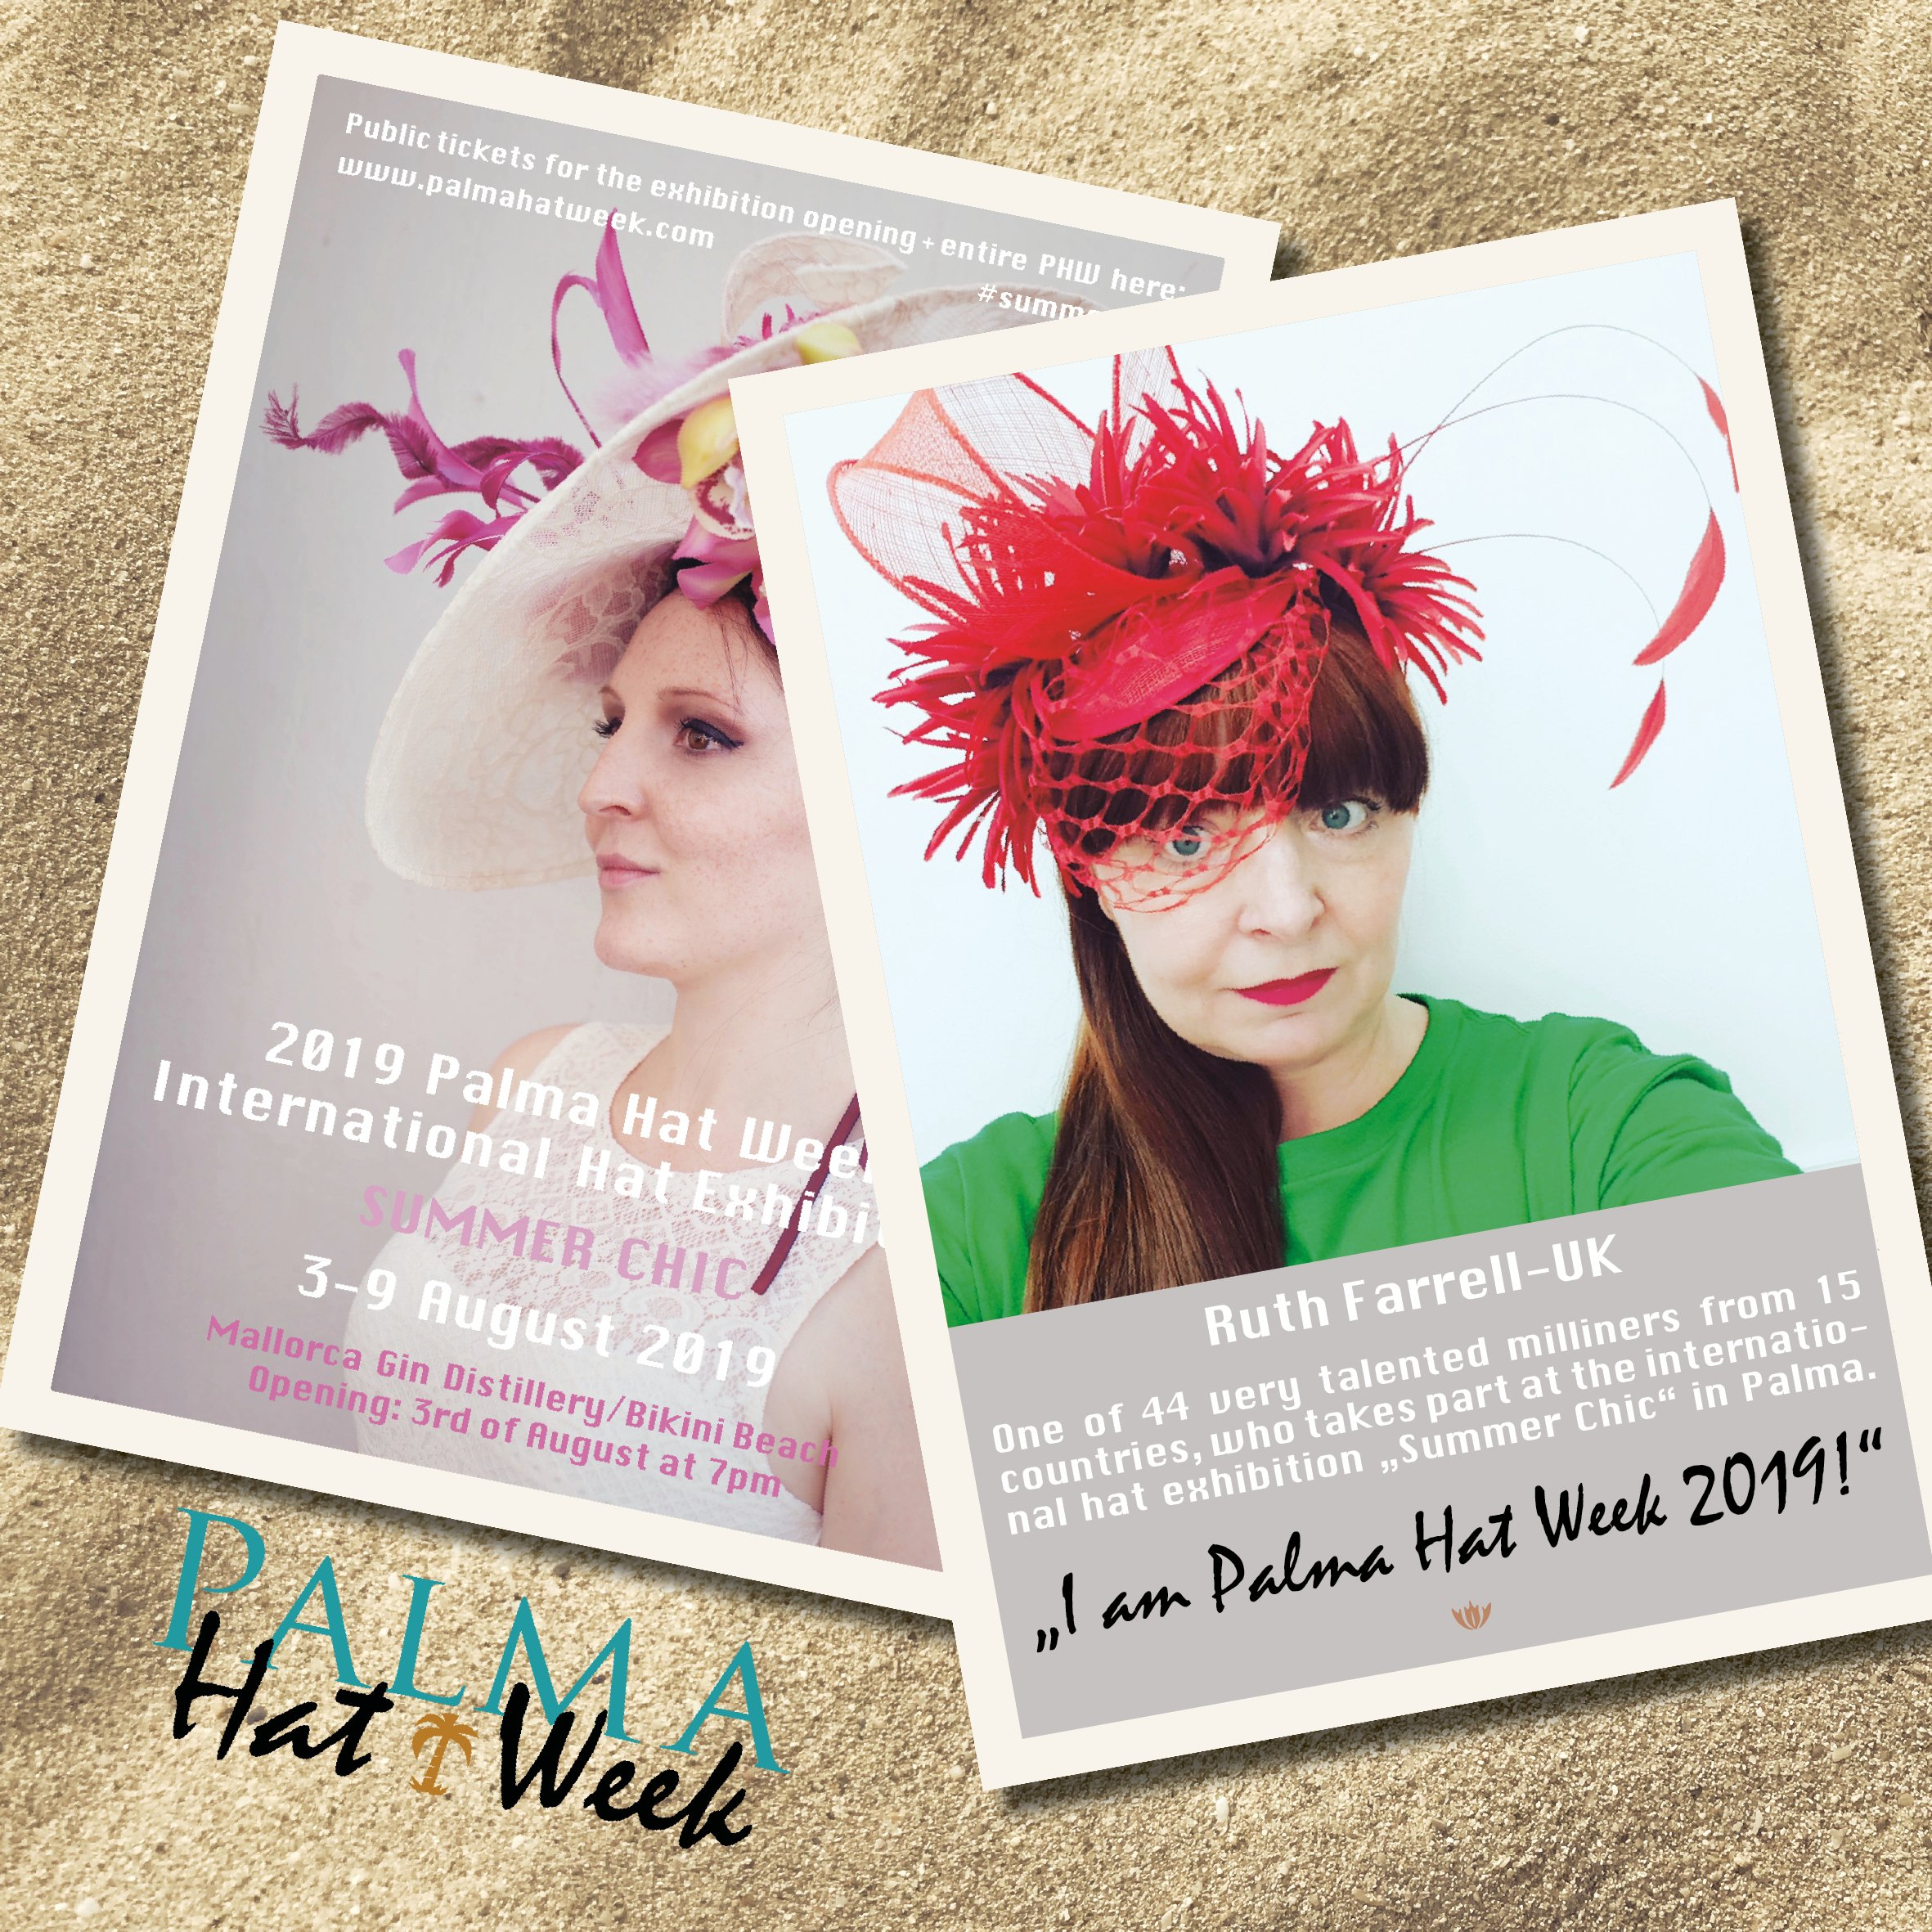 I am Palma Hatweek_Ruth Farrell_Hope Bespoke